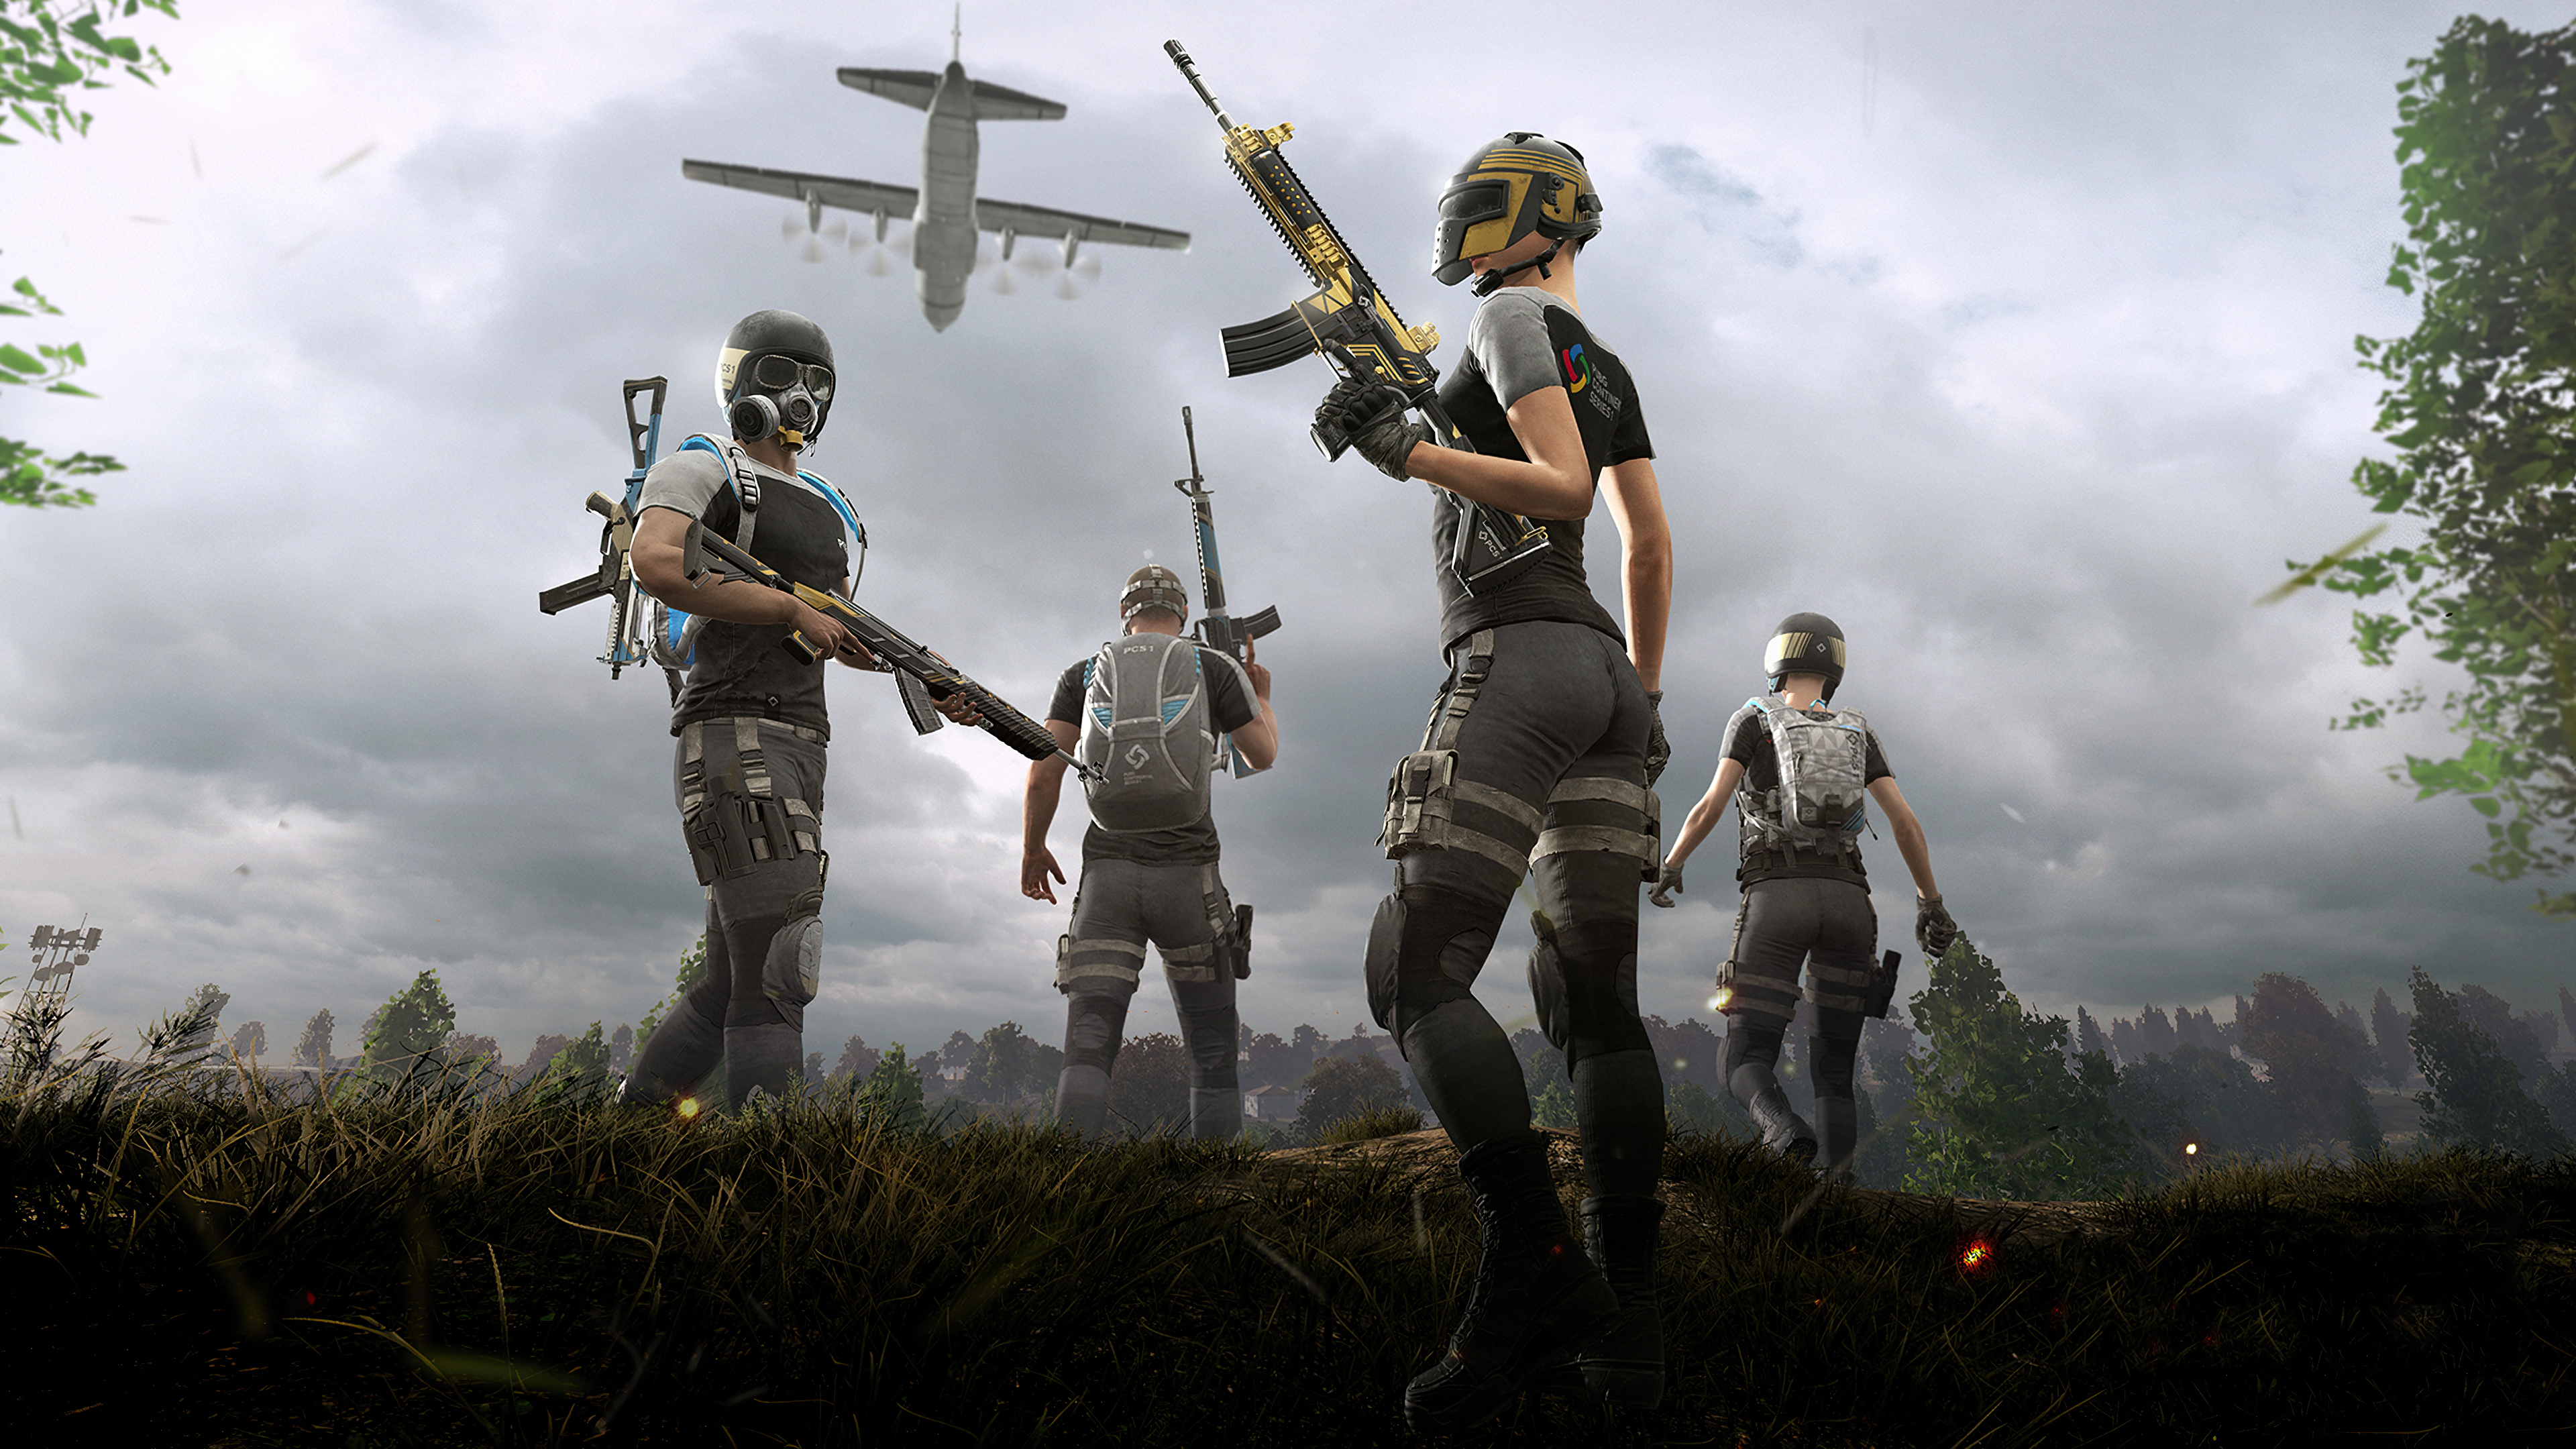 1920x1080 Pubg Mobile 4k 2020 Laptop Full Hd 1080p Hd 4k Wallpapers Images Backgrounds Photos And Pictures